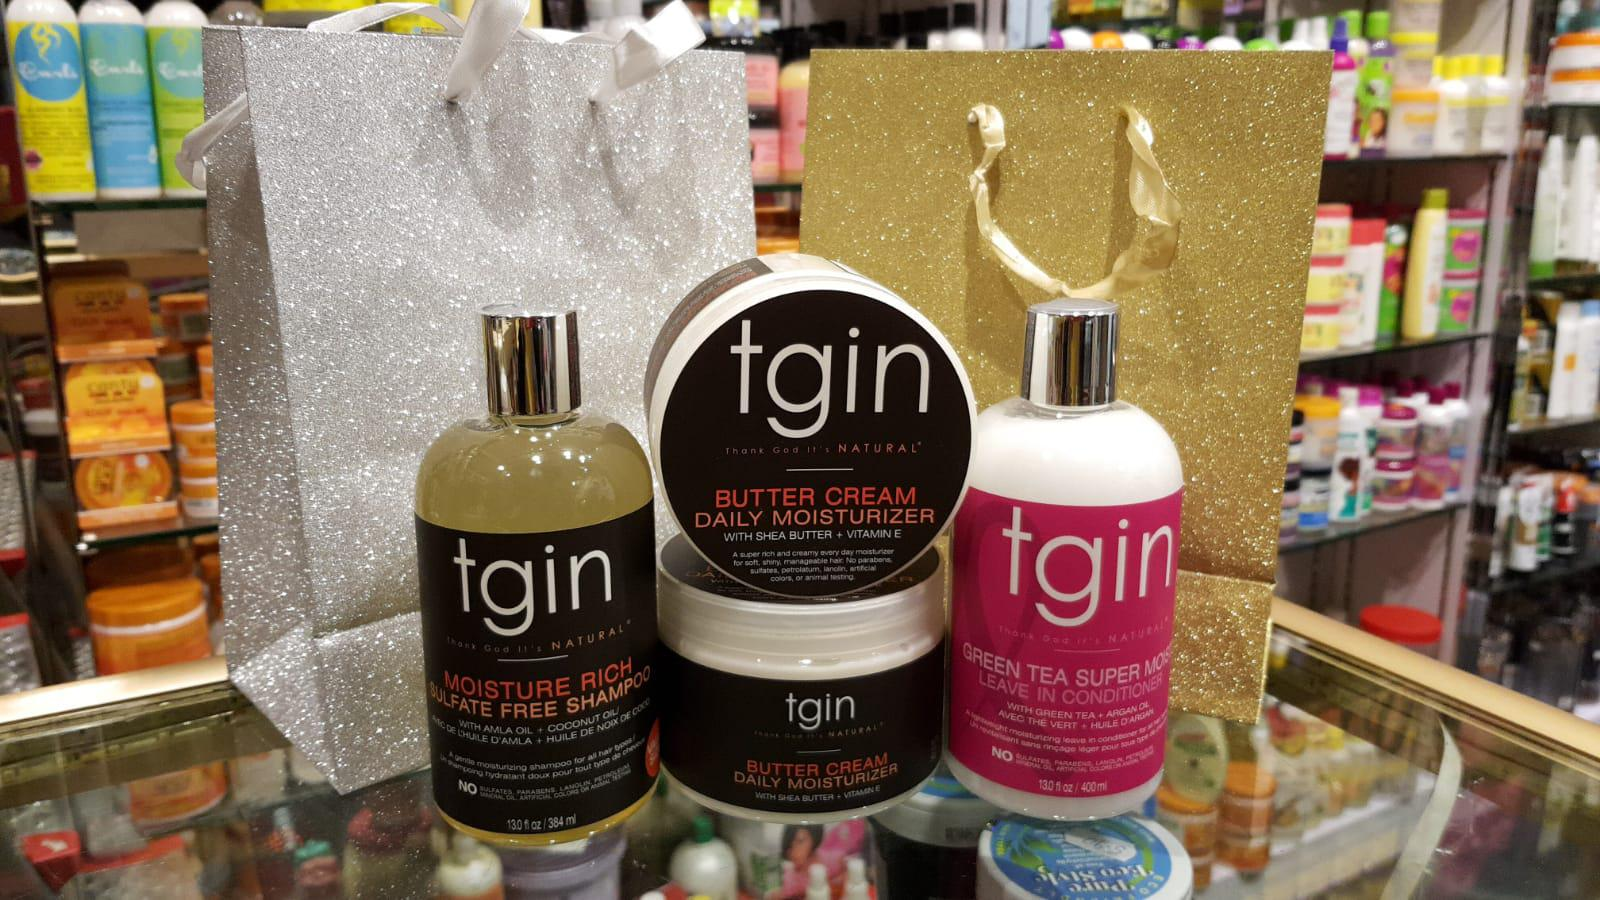 TGIN products